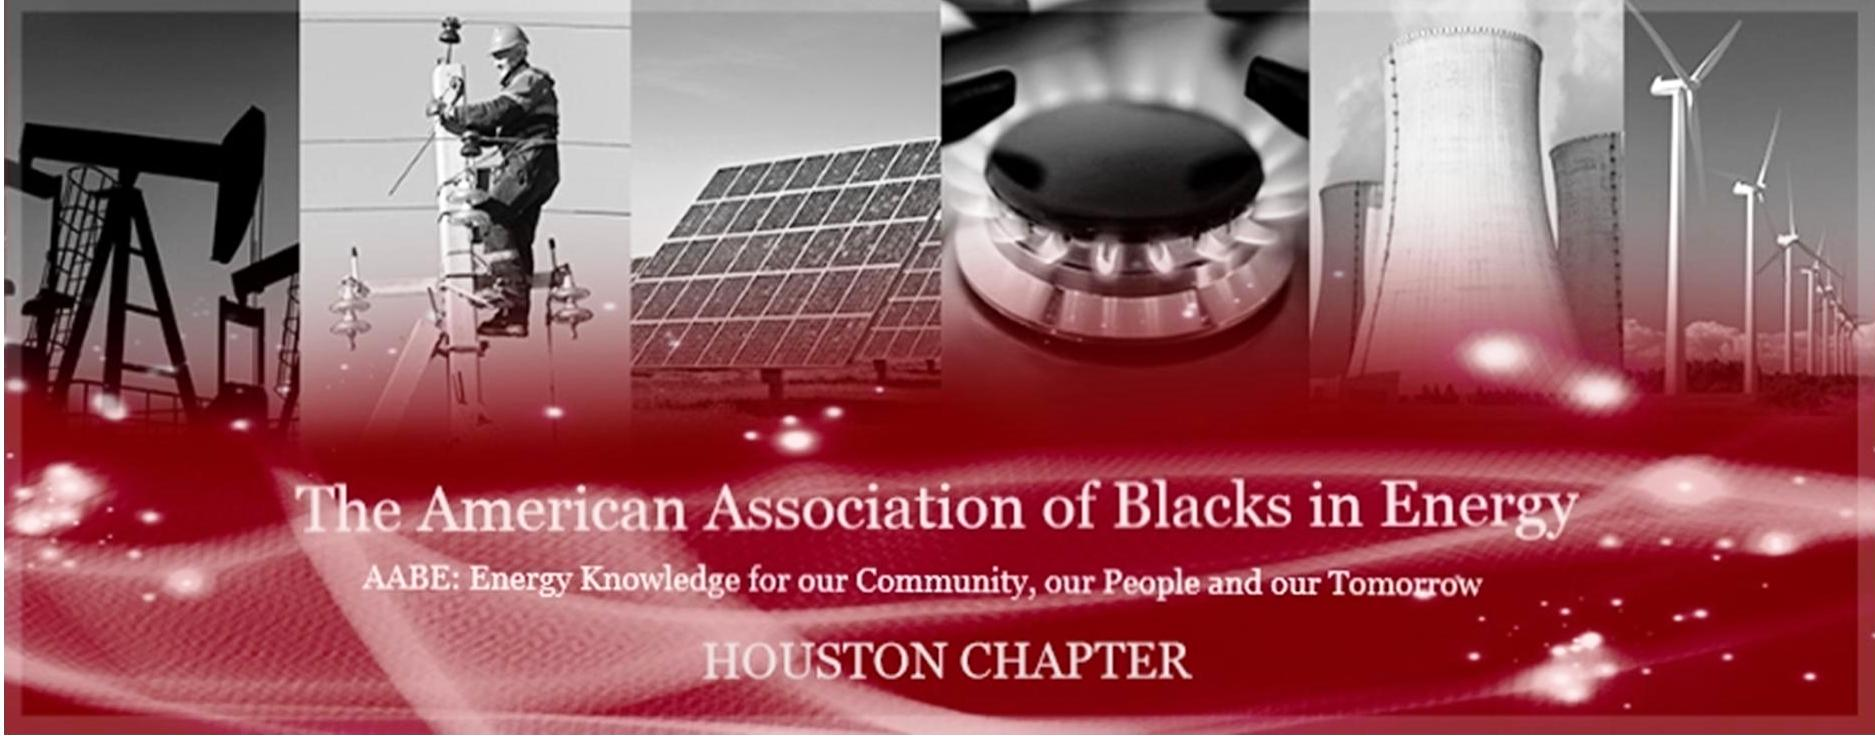 AABE Houston 2014 Campaign Banner